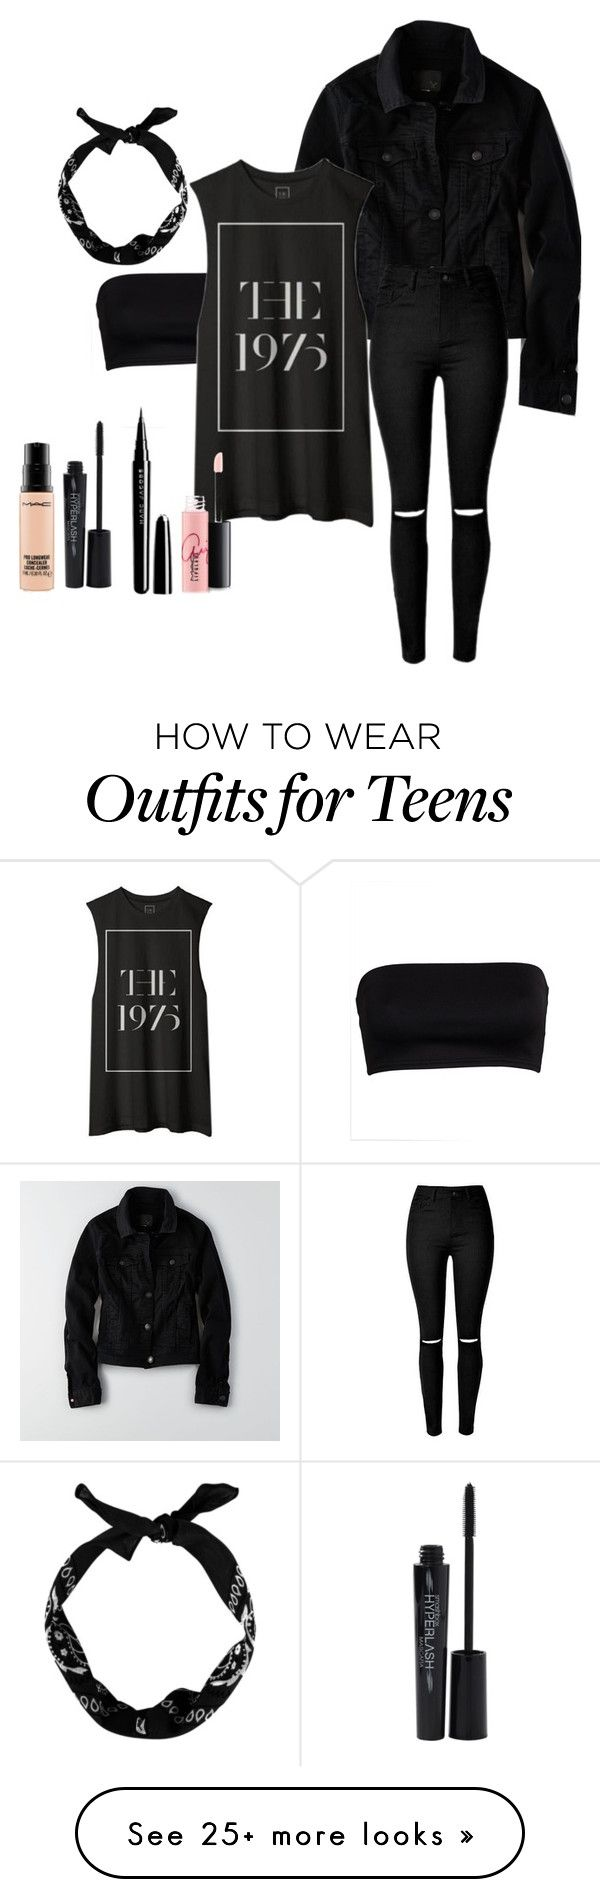 Untitled #1 by fivesecondsofhemmings on Polyvore featuring American Eagle Outfitters, Smashbox, Marc Jacobs, MAC Cosmetics, women's clothing, women, female, woman, misses and juniors